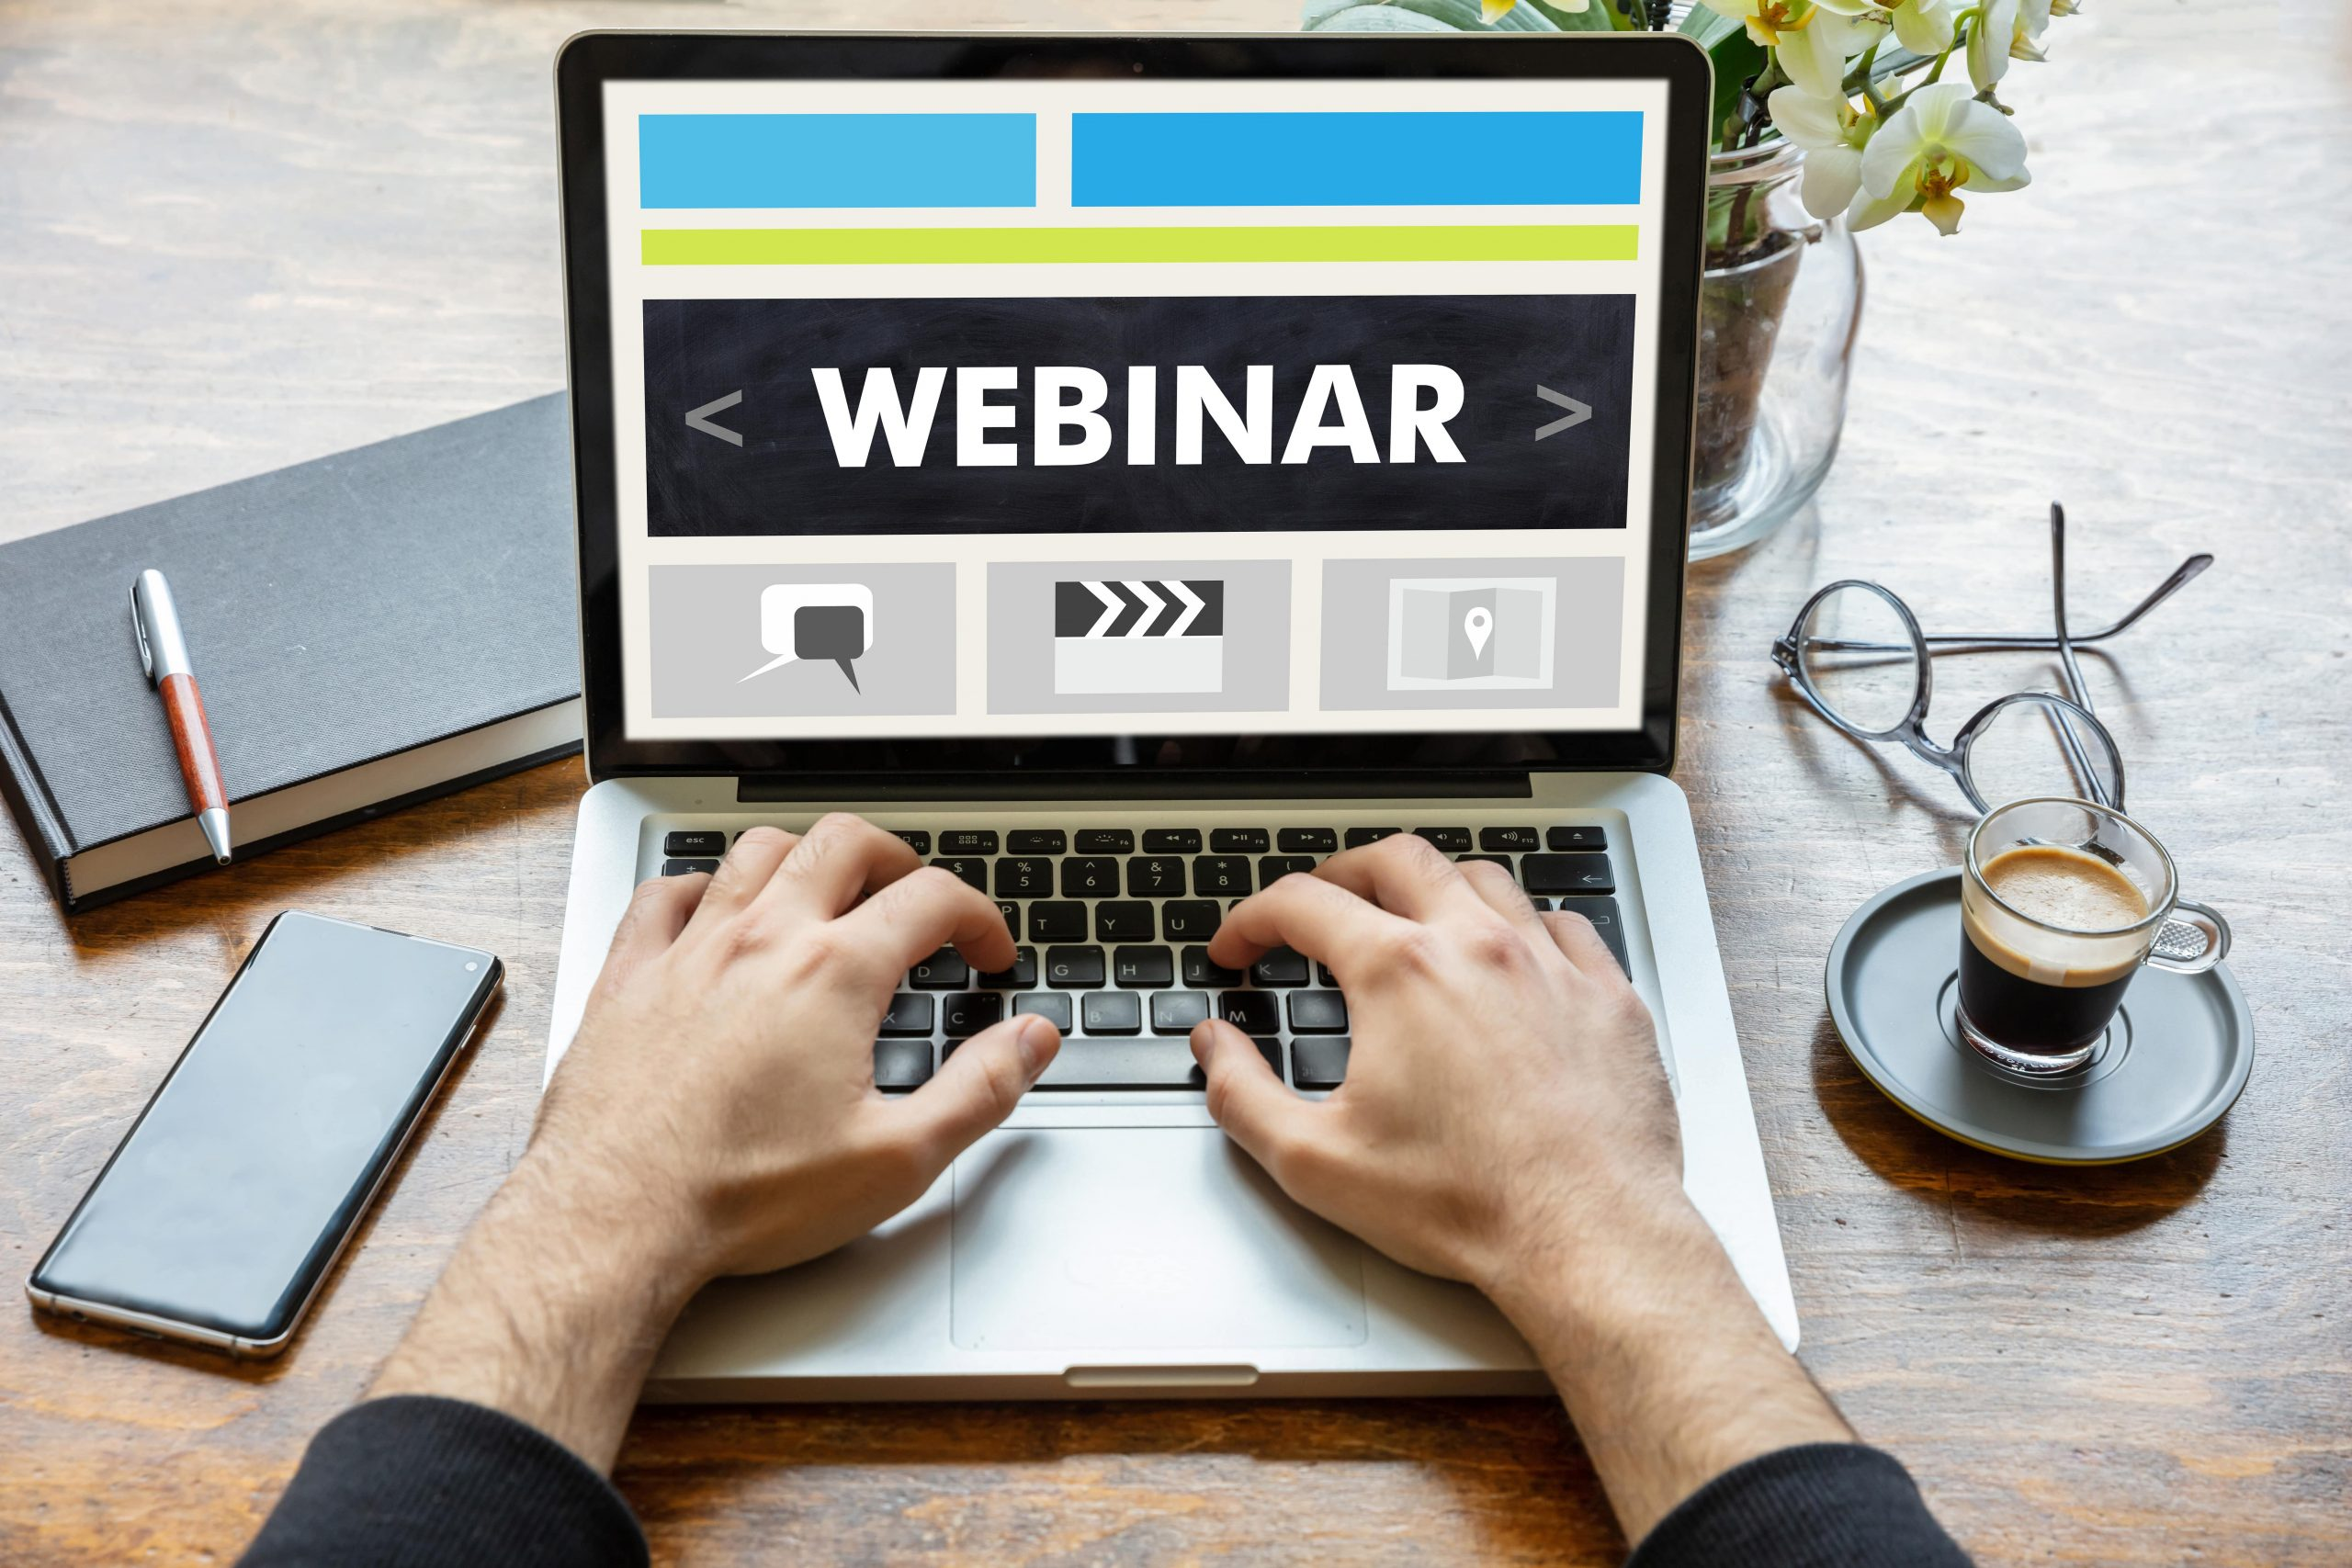 Por que los Webinars son la mejor estrategia de Marketing Digital